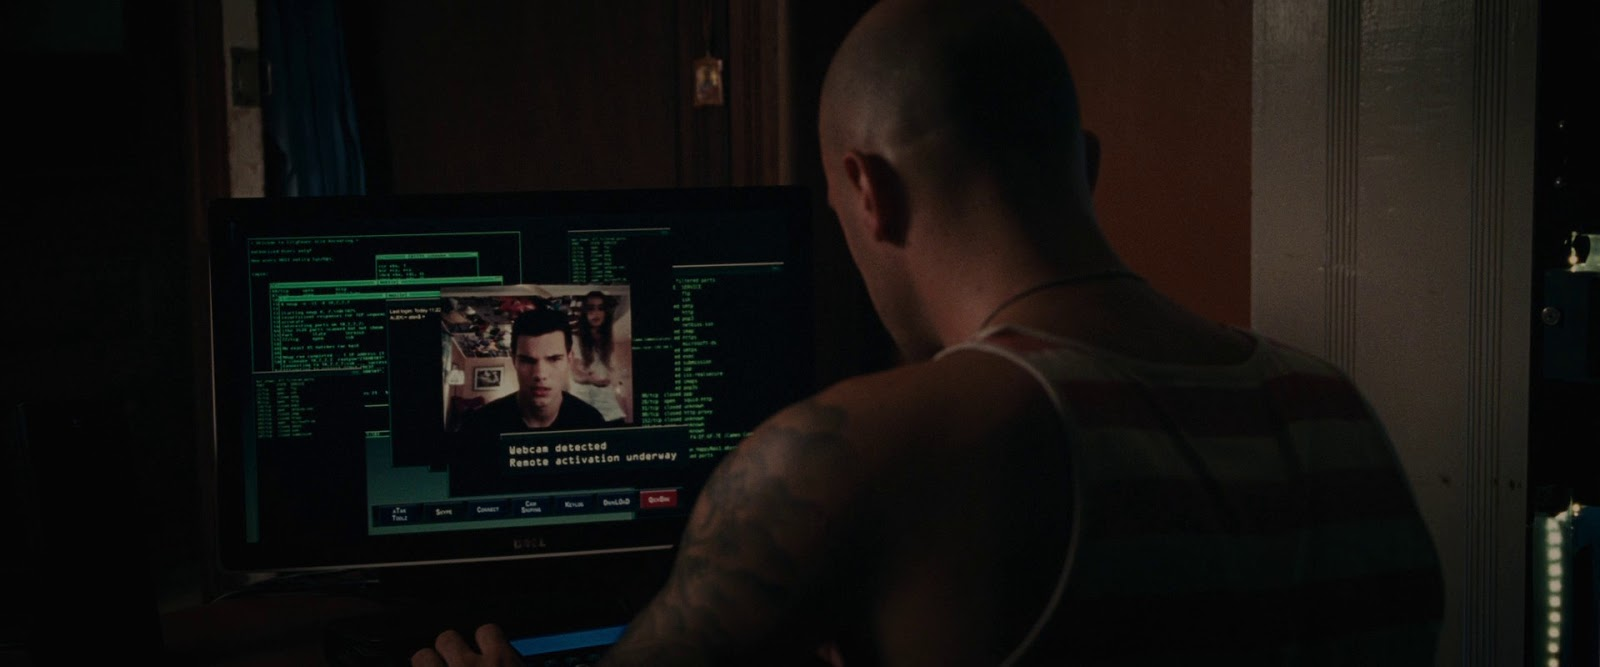 Abduction nmap cameo